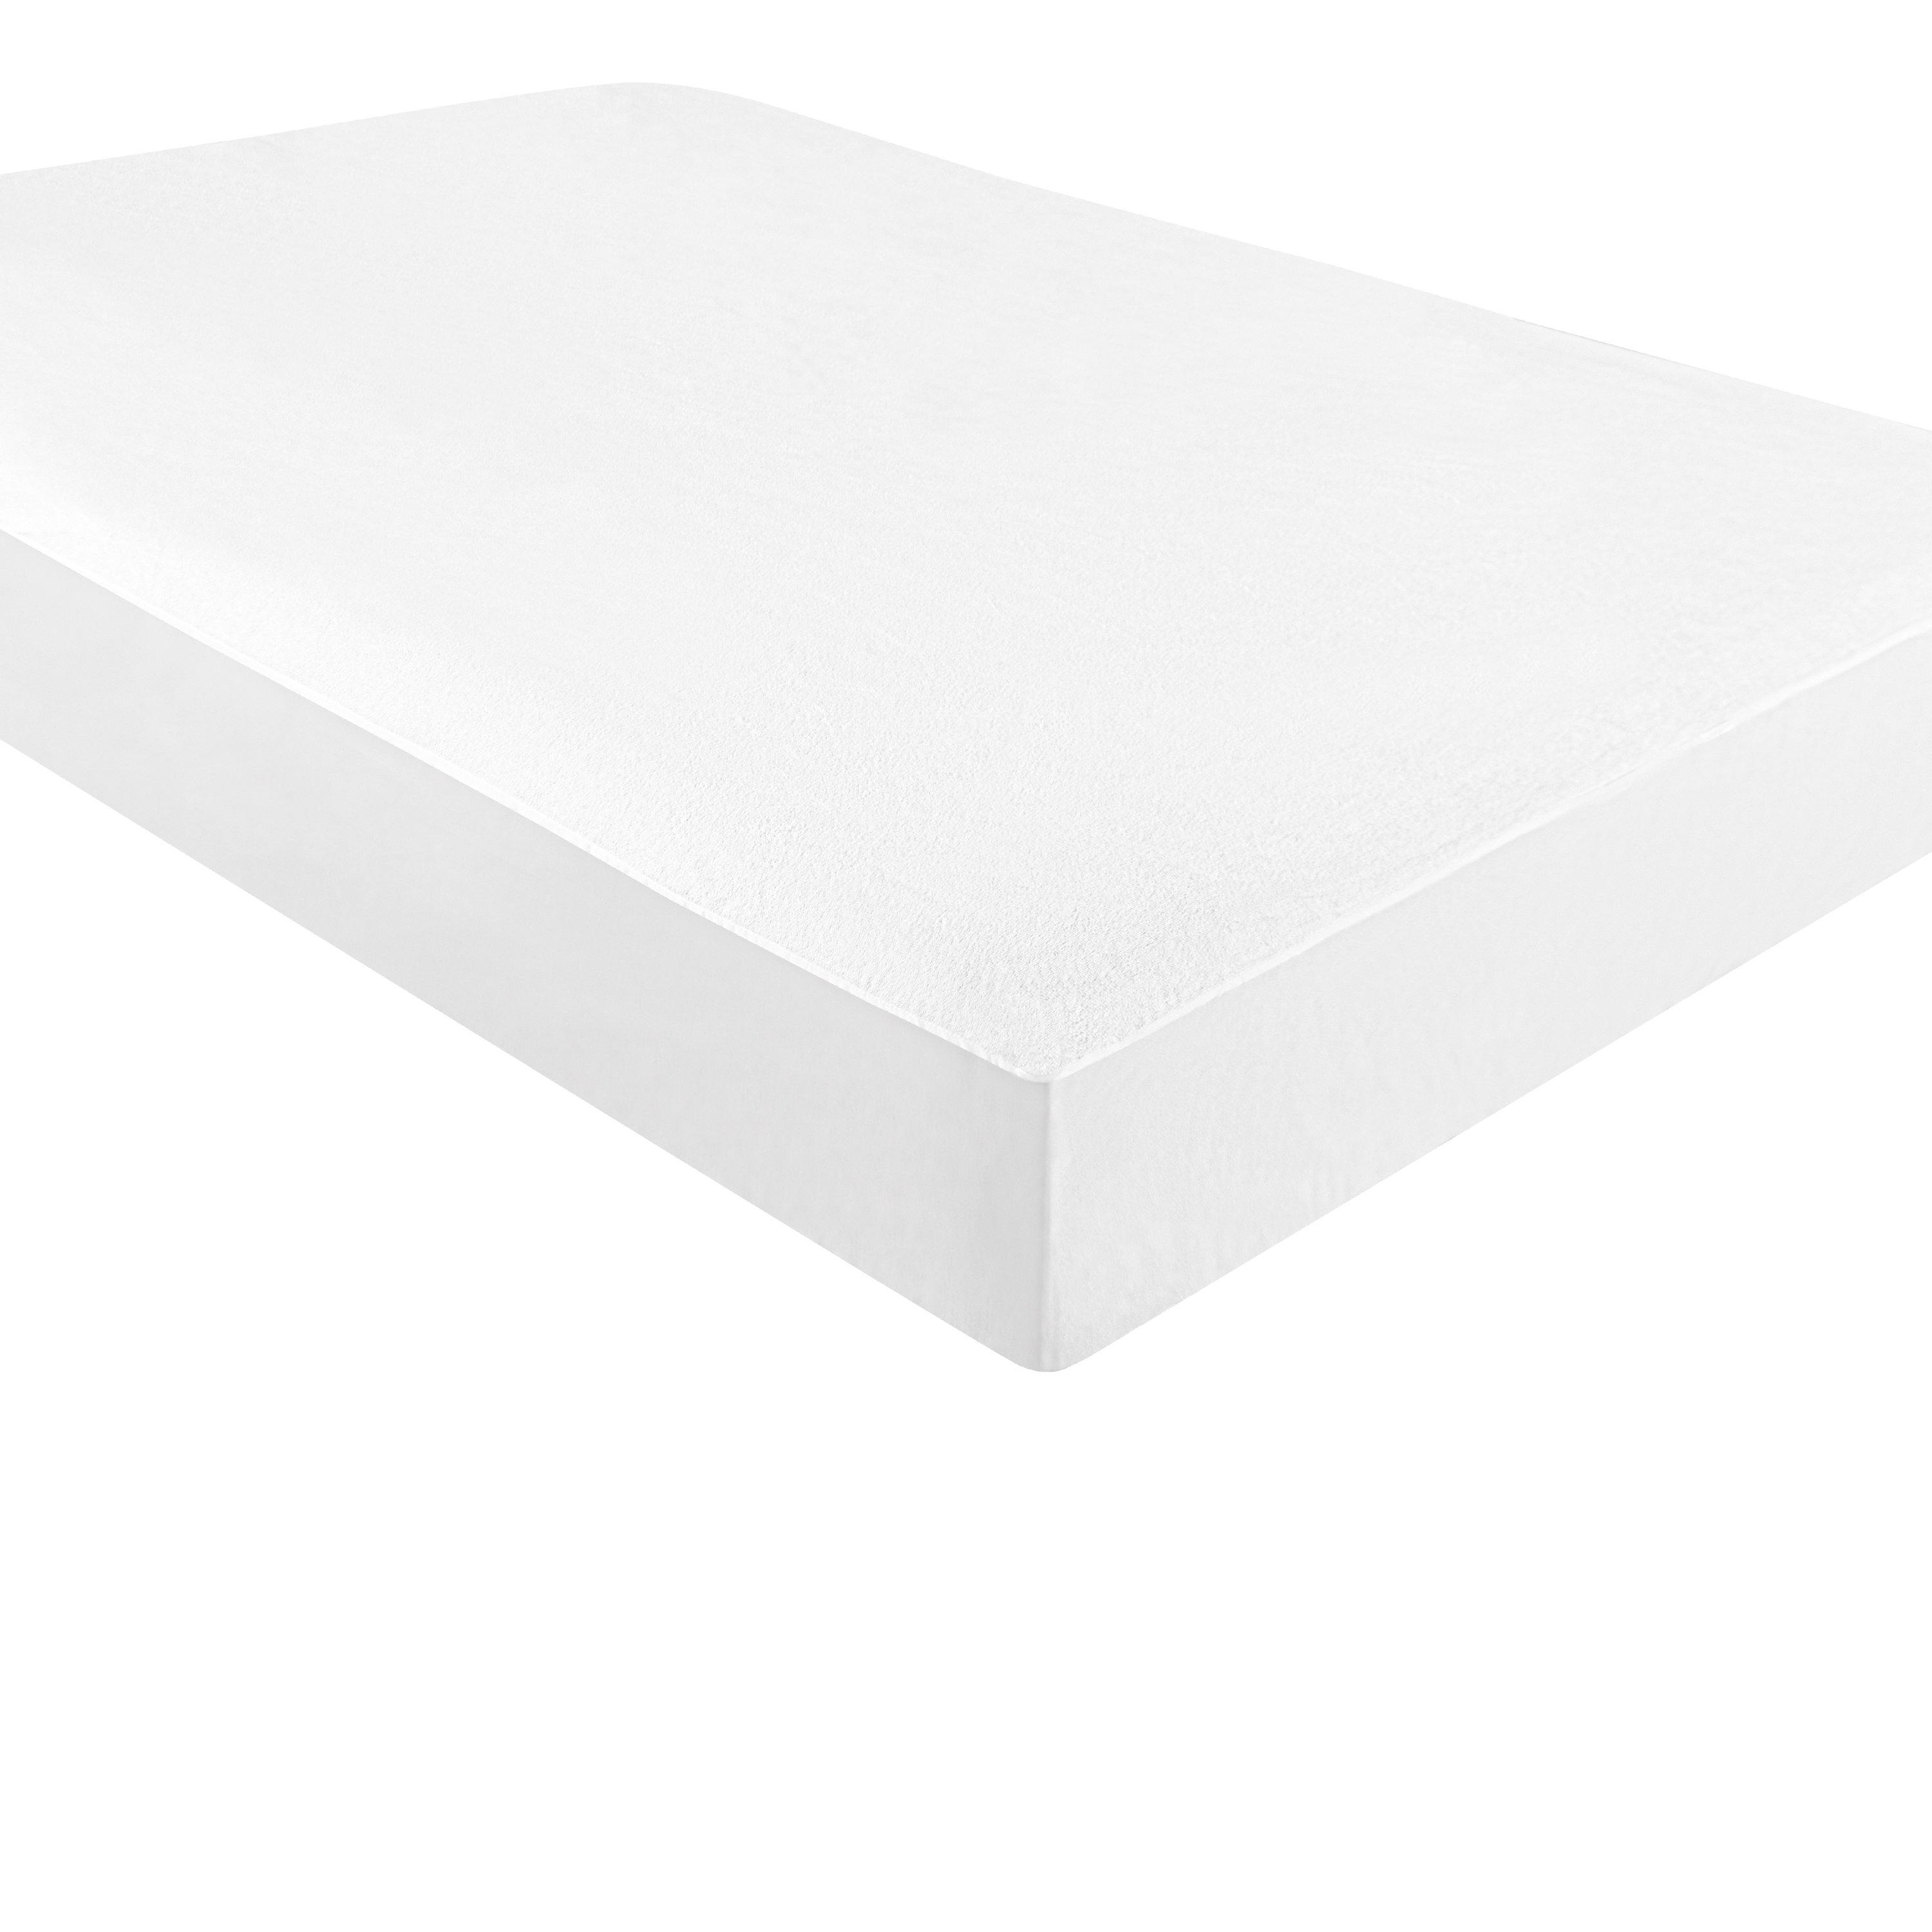 NTBAY Cotton Terry Waterproof Mattress Protector, Hypoallergenic and Breathable Mattress Pad Cover with Deep Pocket